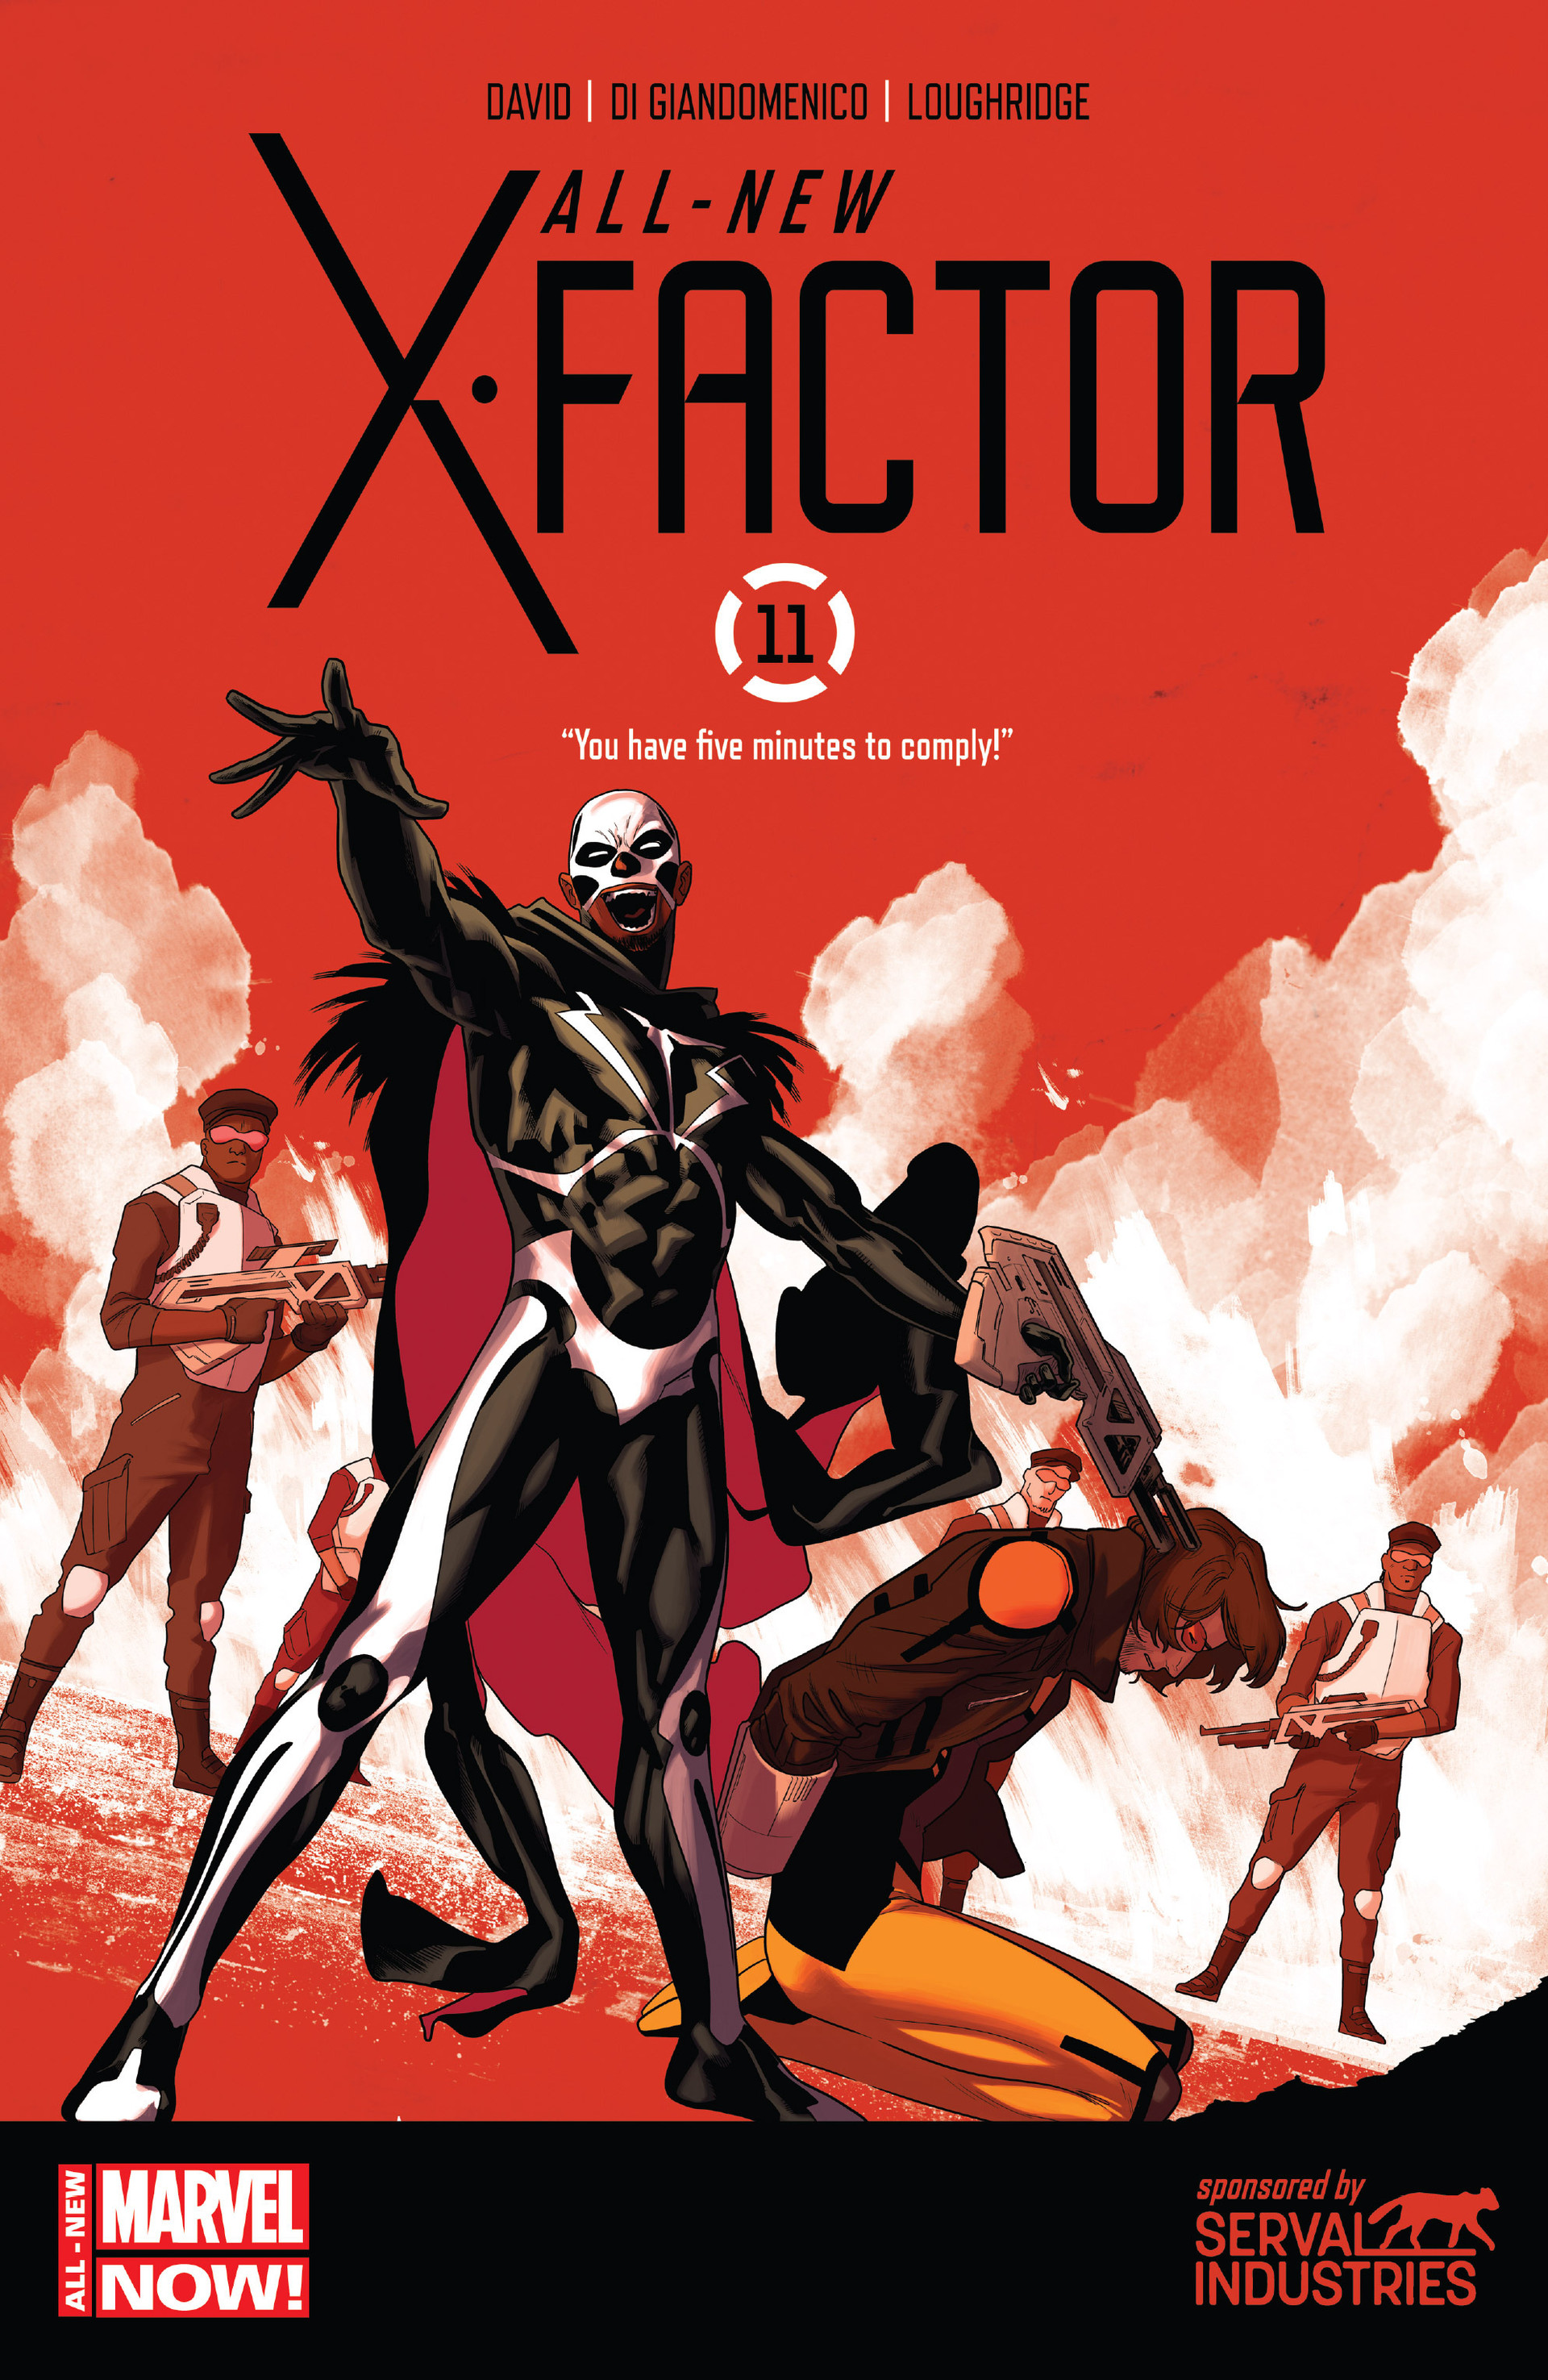 Read online All-New X-Factor comic -  Issue #11 - 1